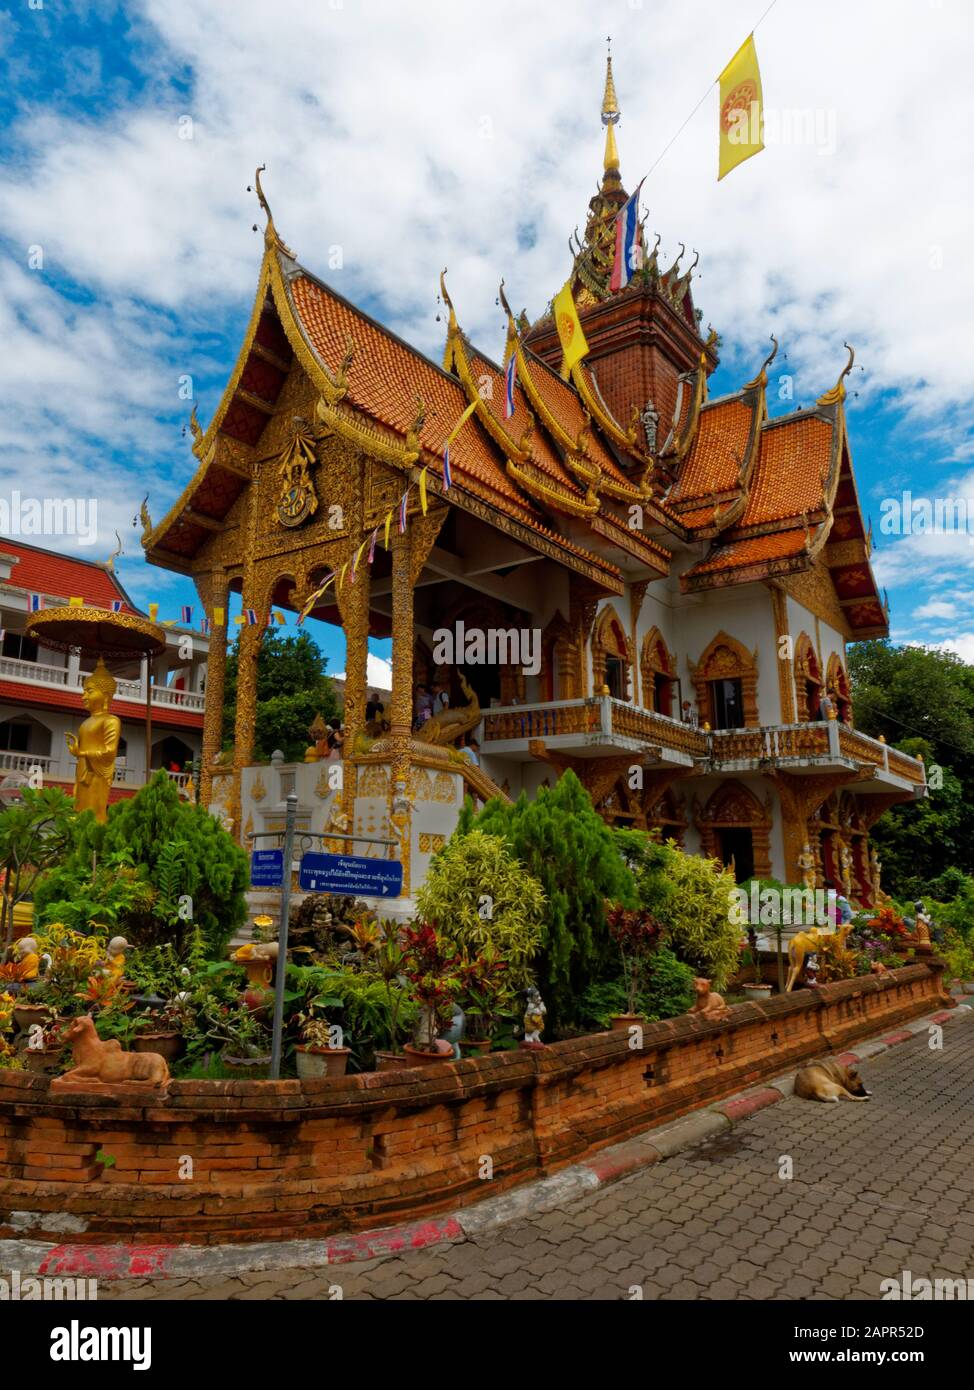 Wat Buppharam temple in Chiang Mai, Thailand, Asia Stock Photo